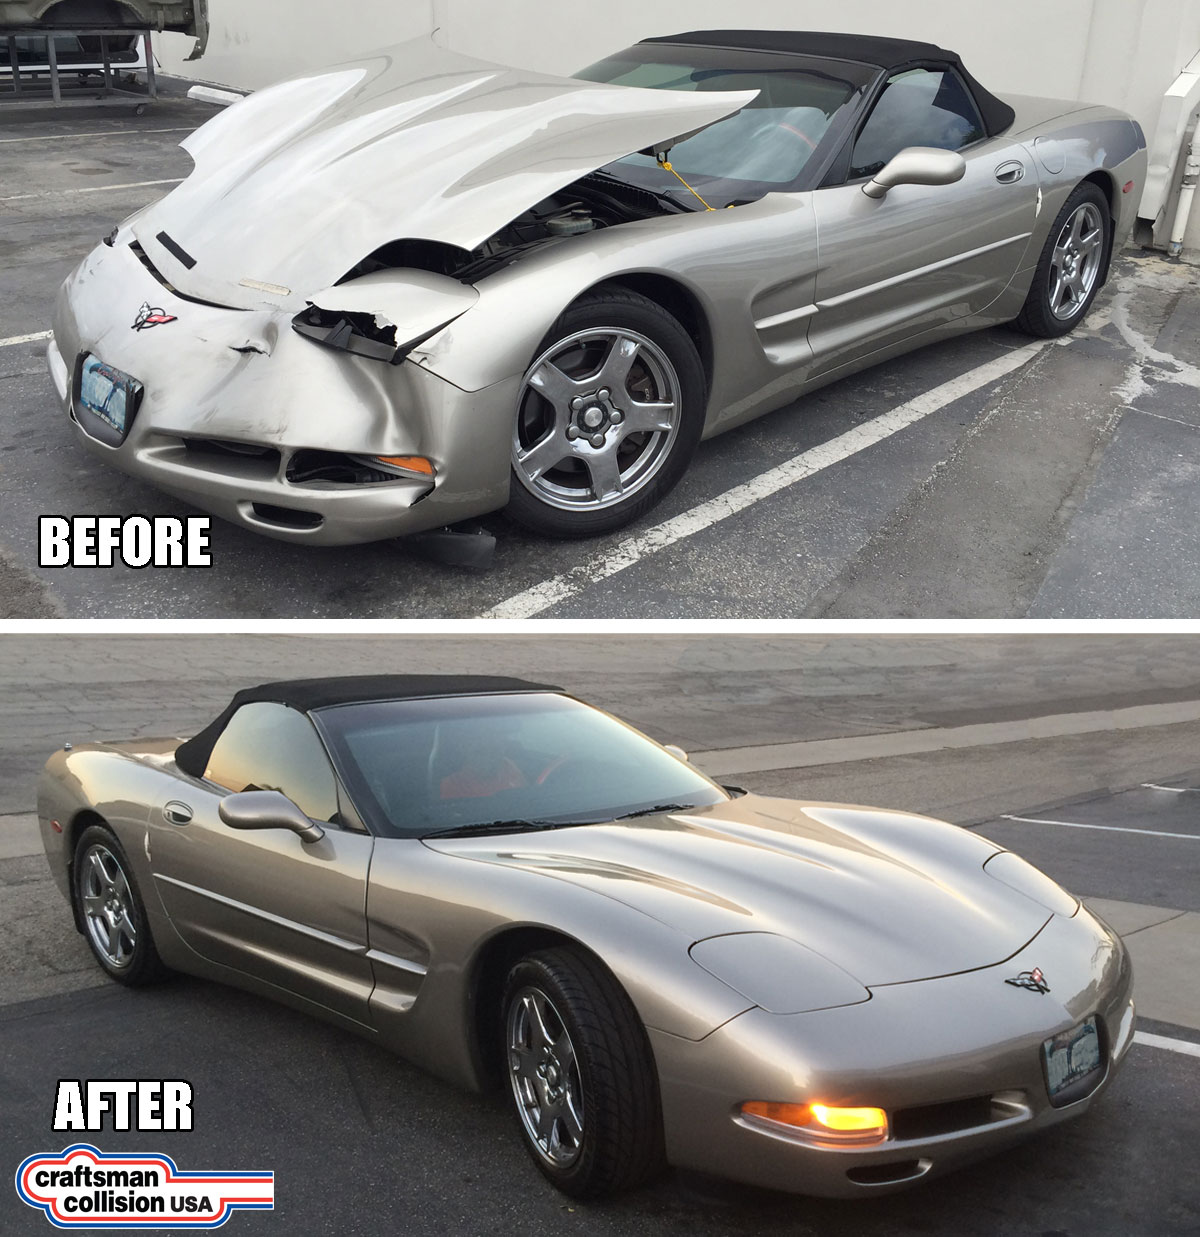 Corvette Collision repairs